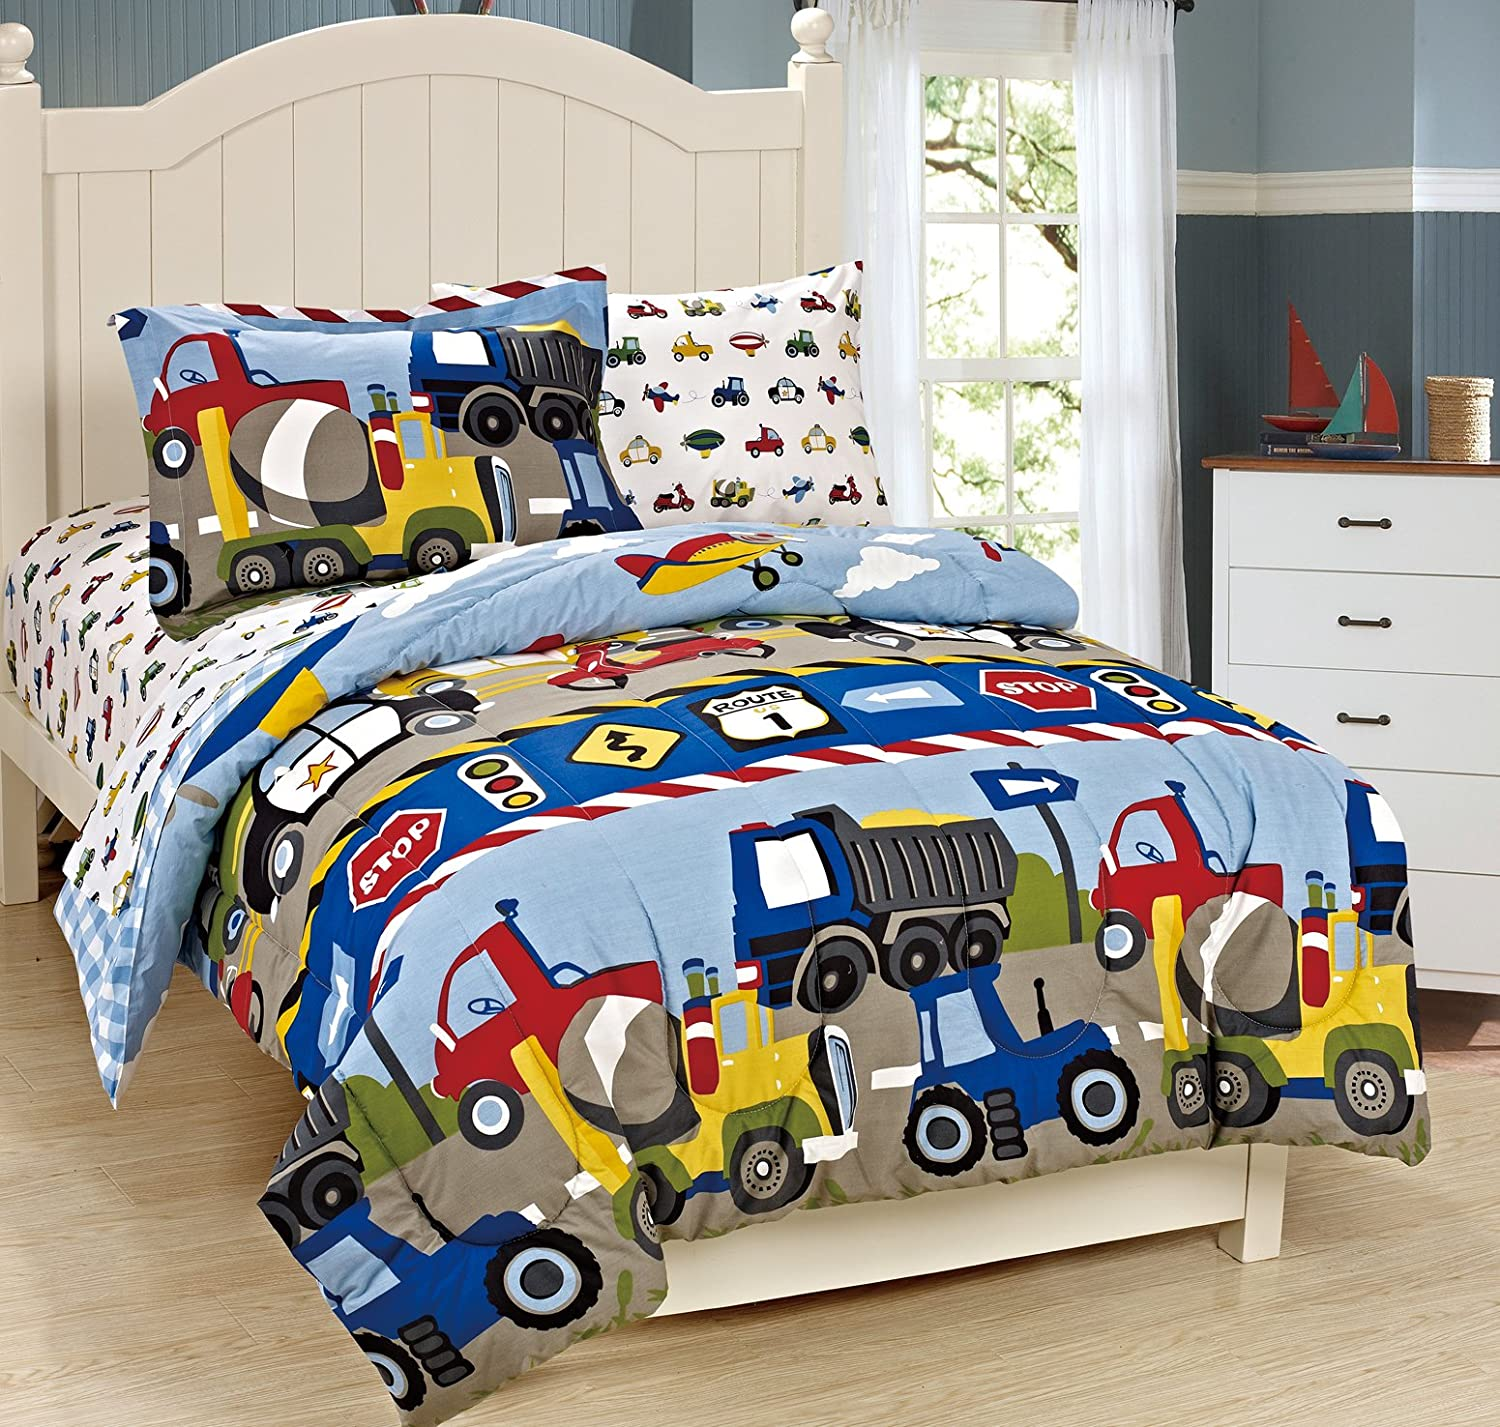 Trucks Tractors Cars Kids Twin Bedding Size Boys 5 Pc ...